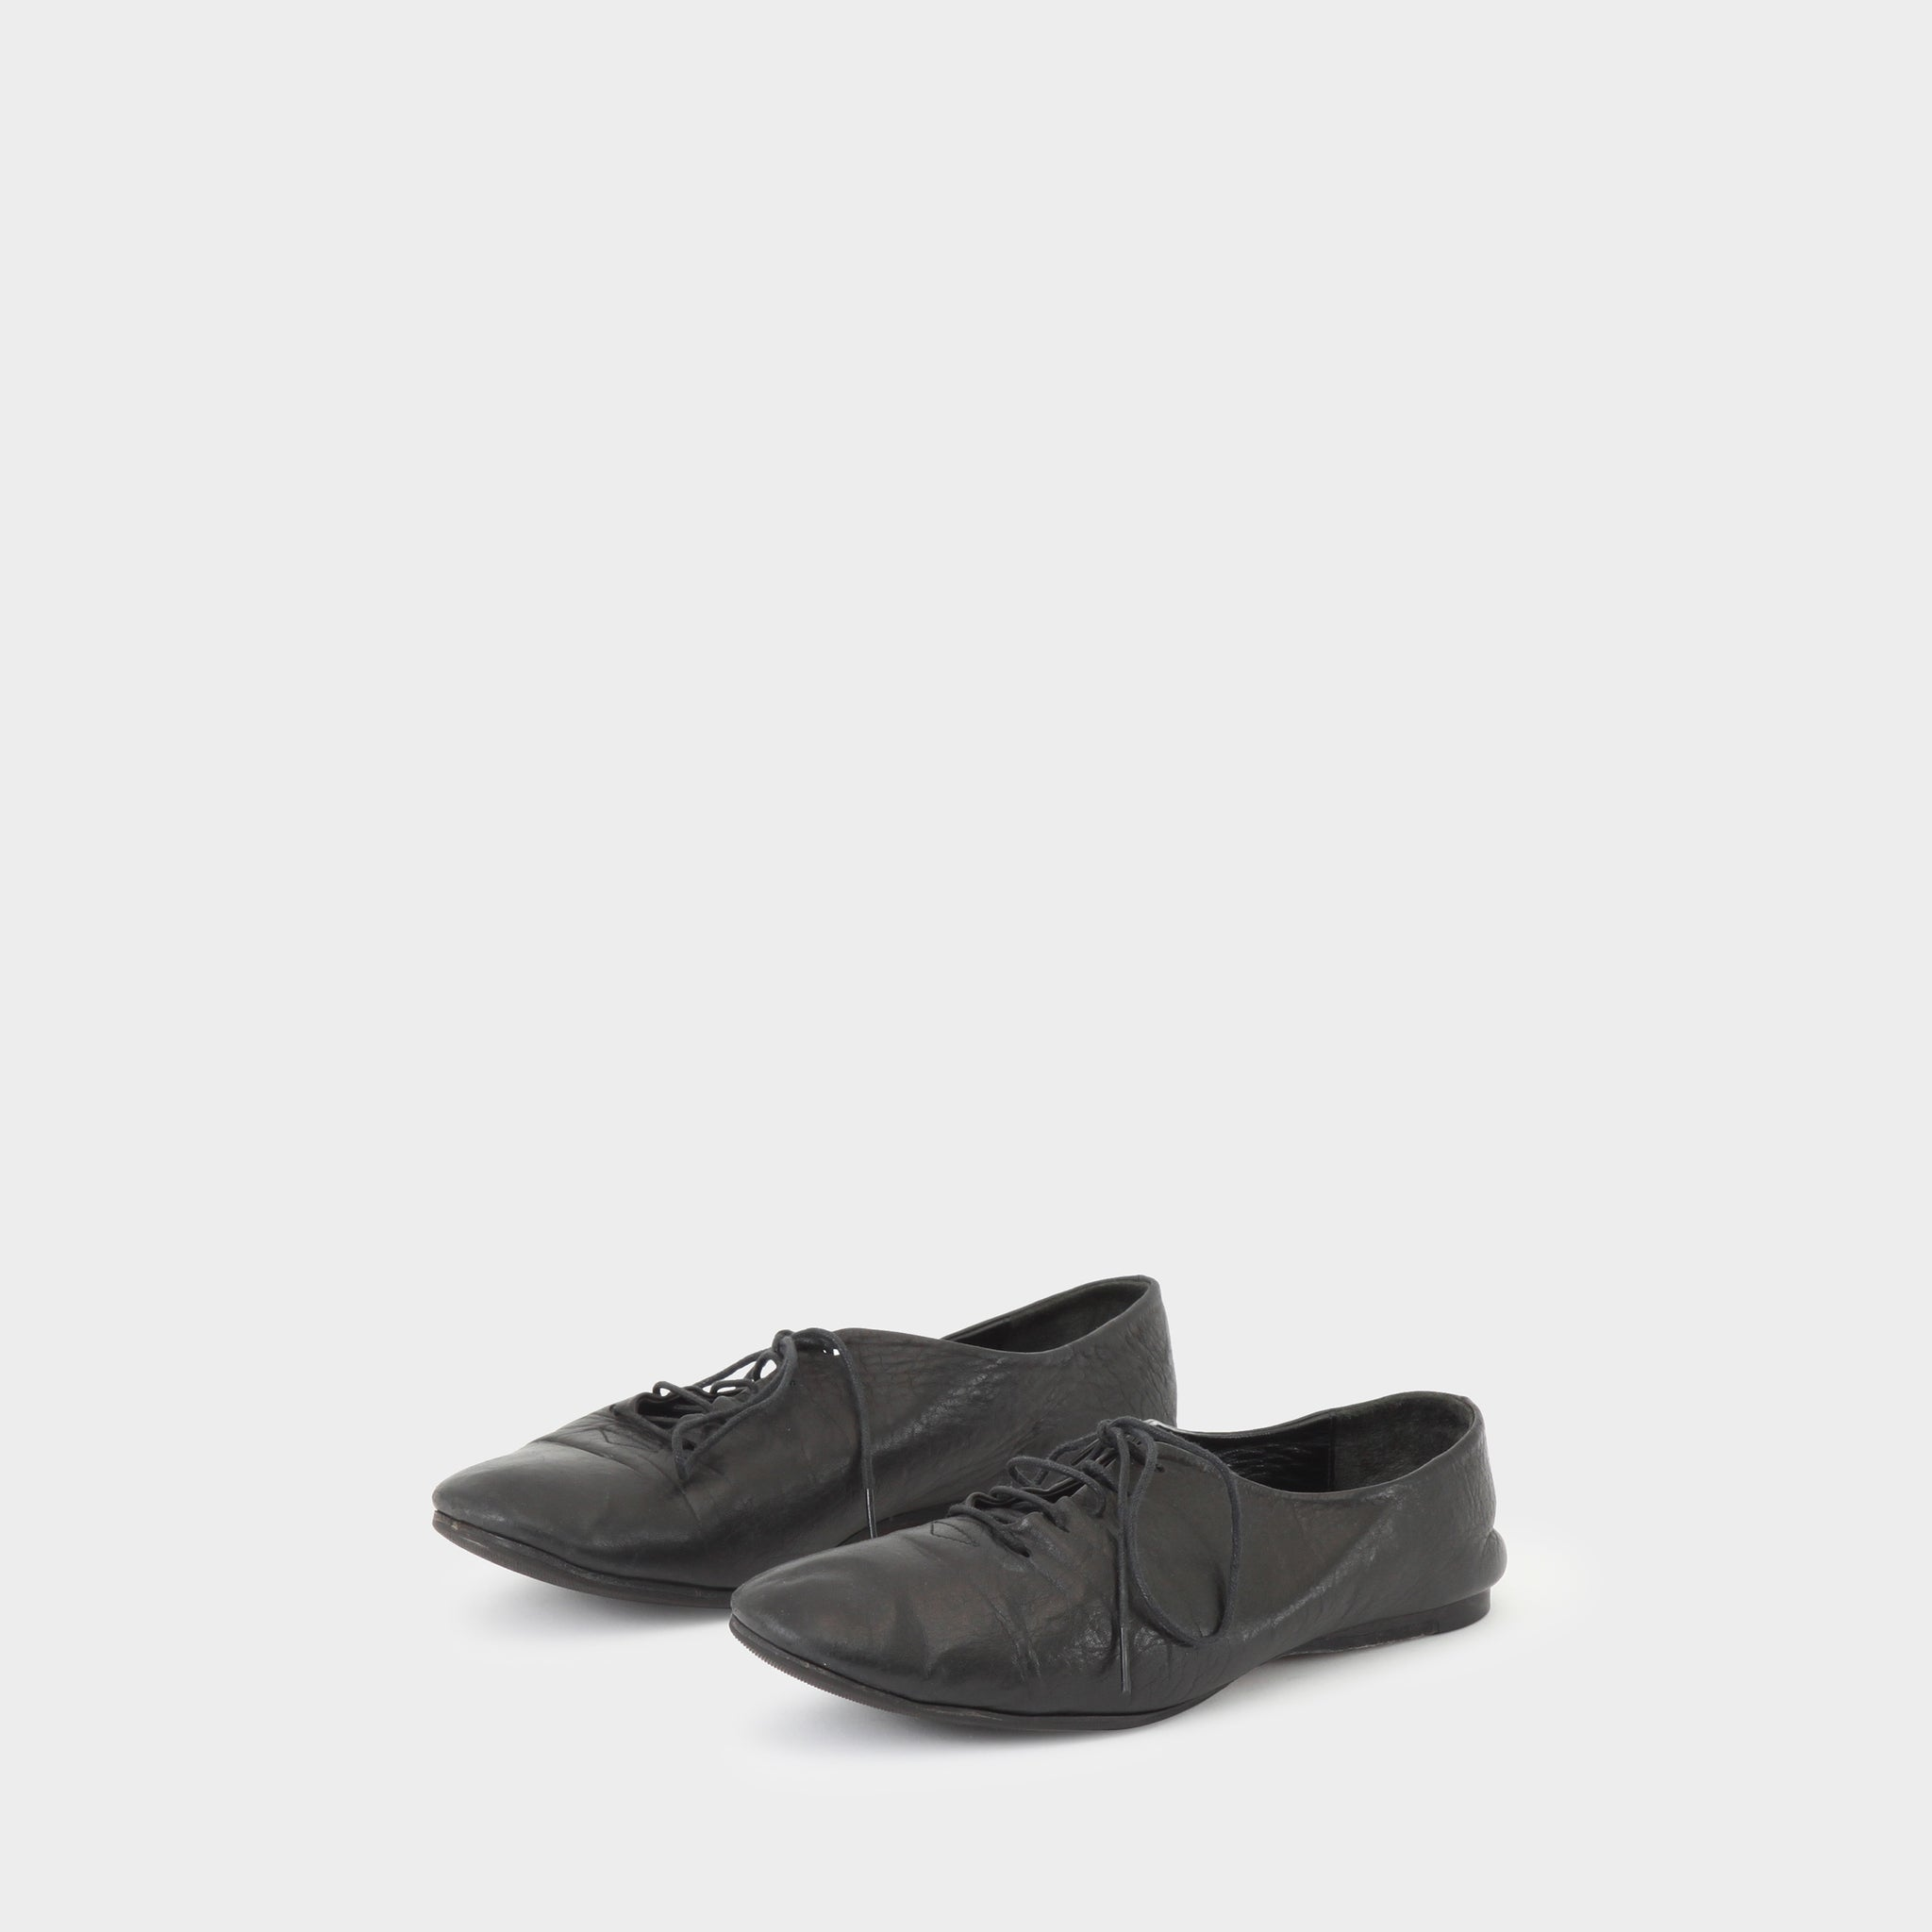 Yohji Yamamoto Black Leather Lace-up Flats